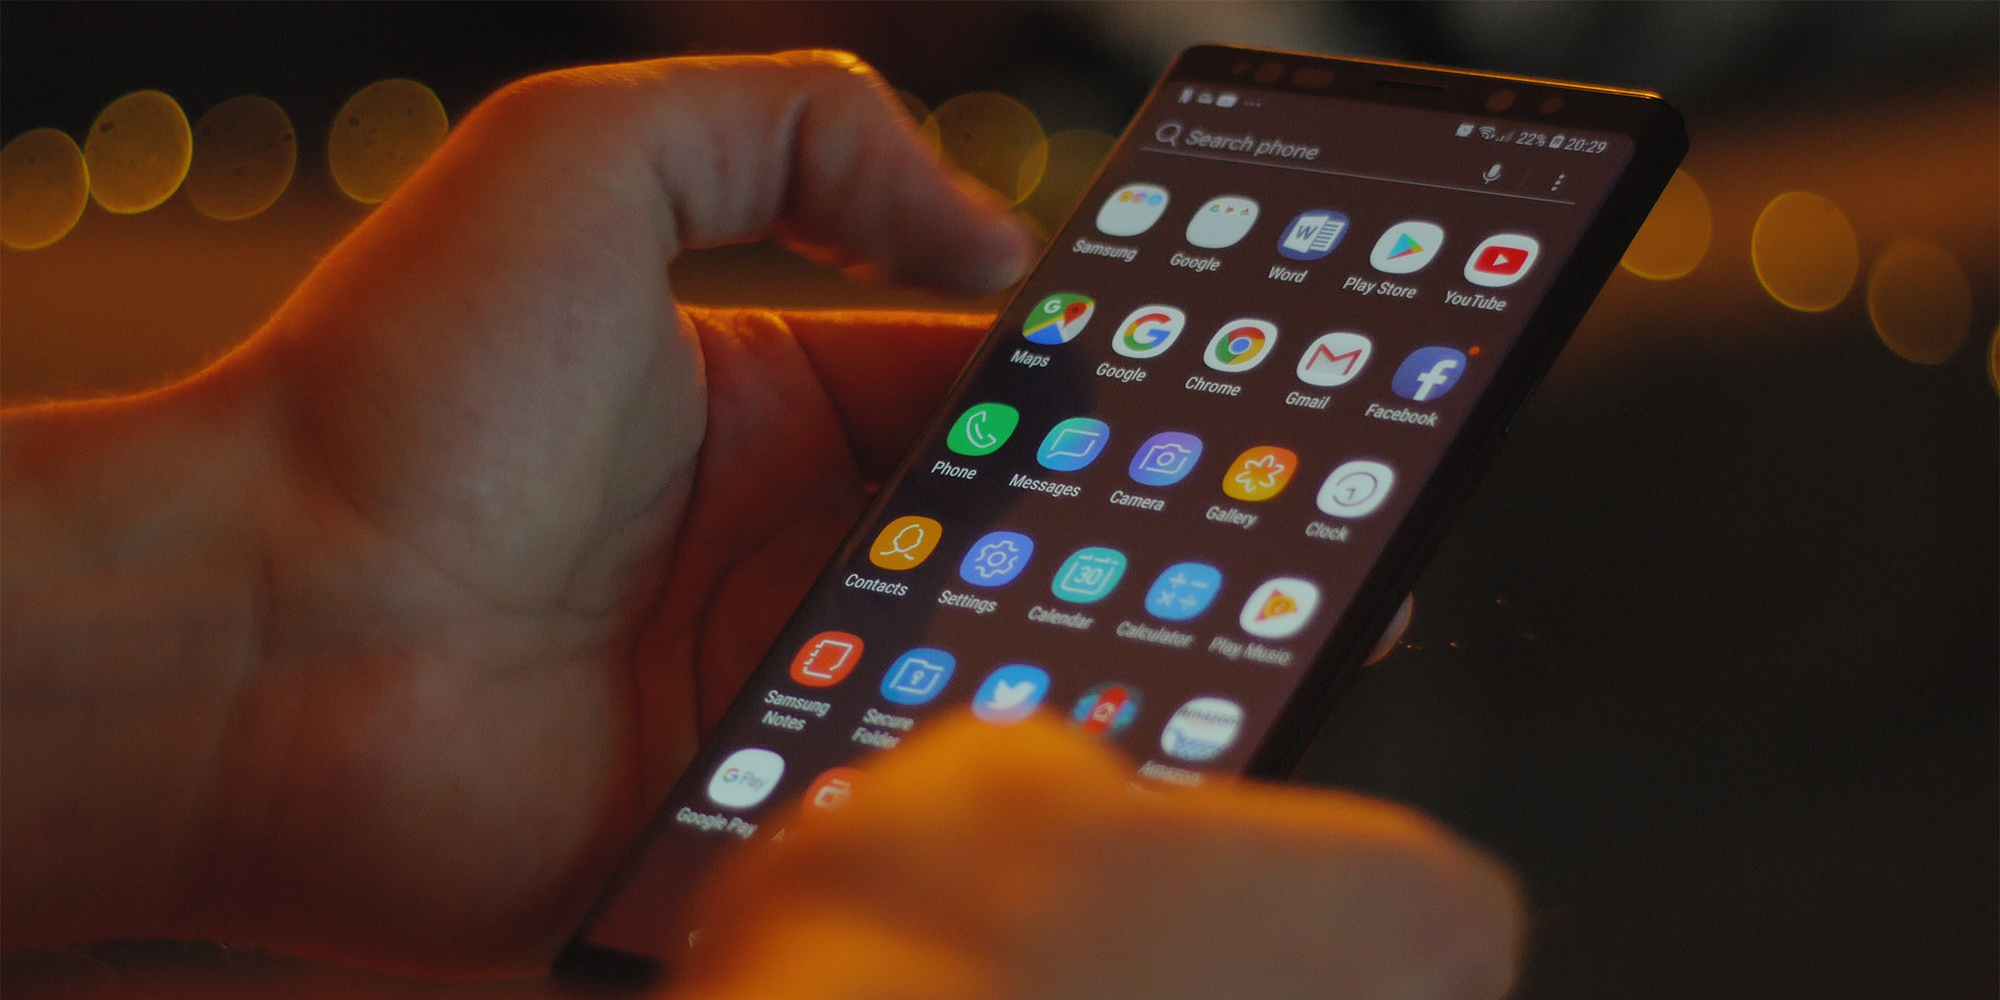 Samsung Galaxy Note 9 review: Incremental changes make it